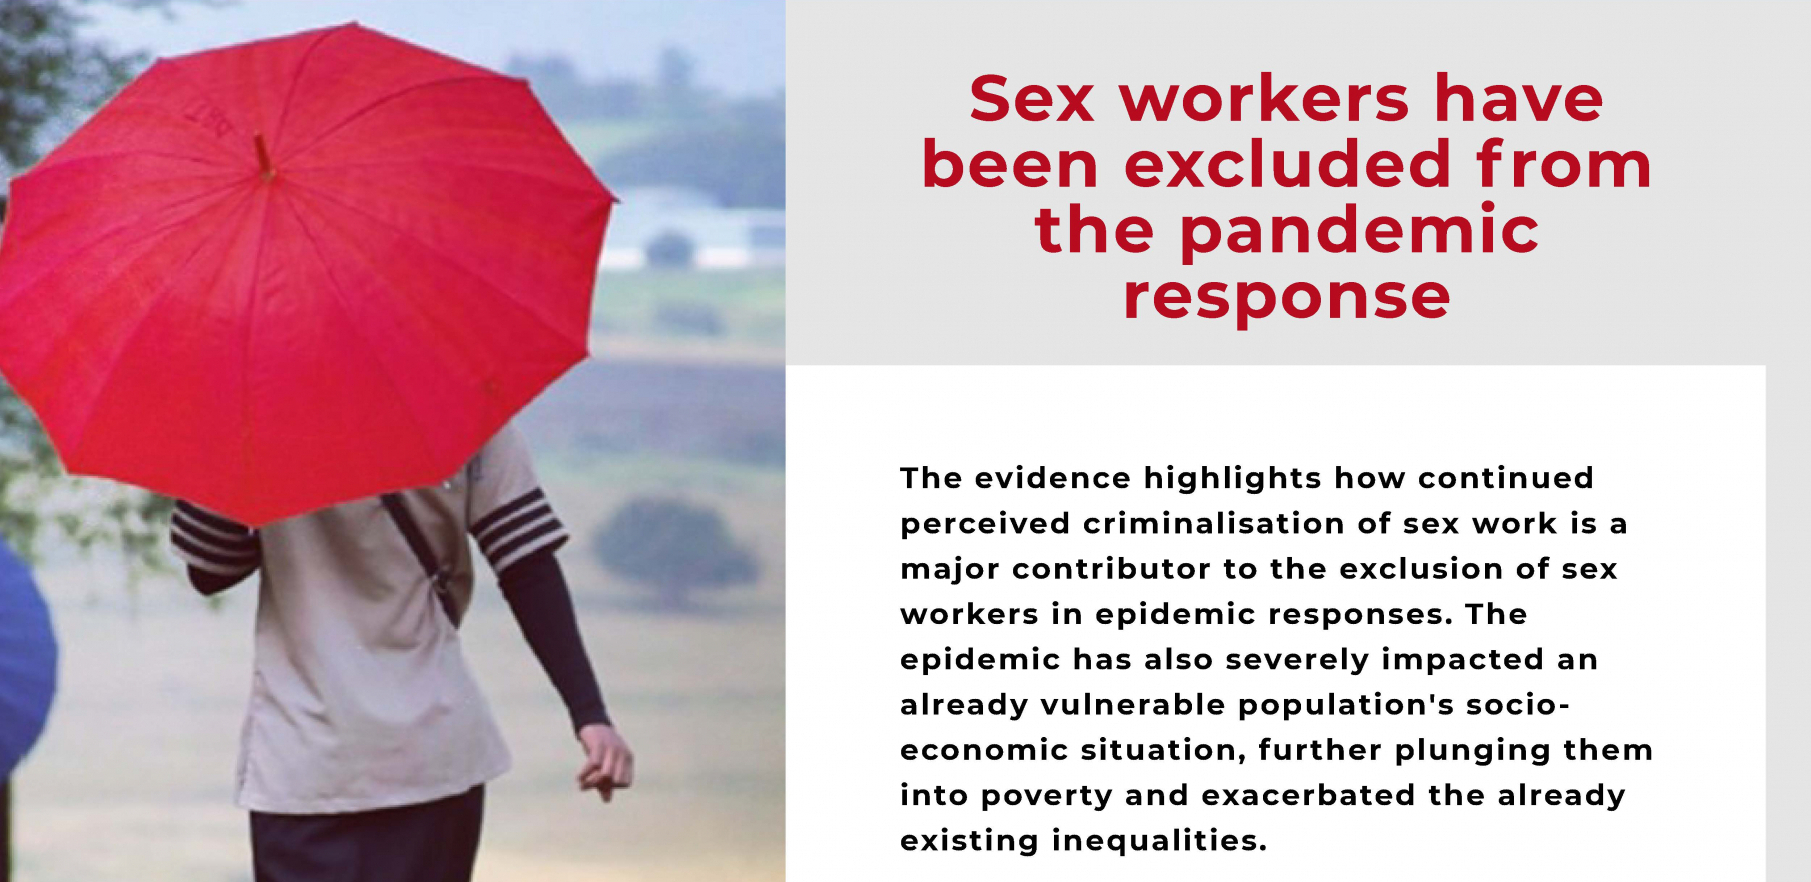 The impact of the Covid-19 pandemic on sex workers in Southern Africa